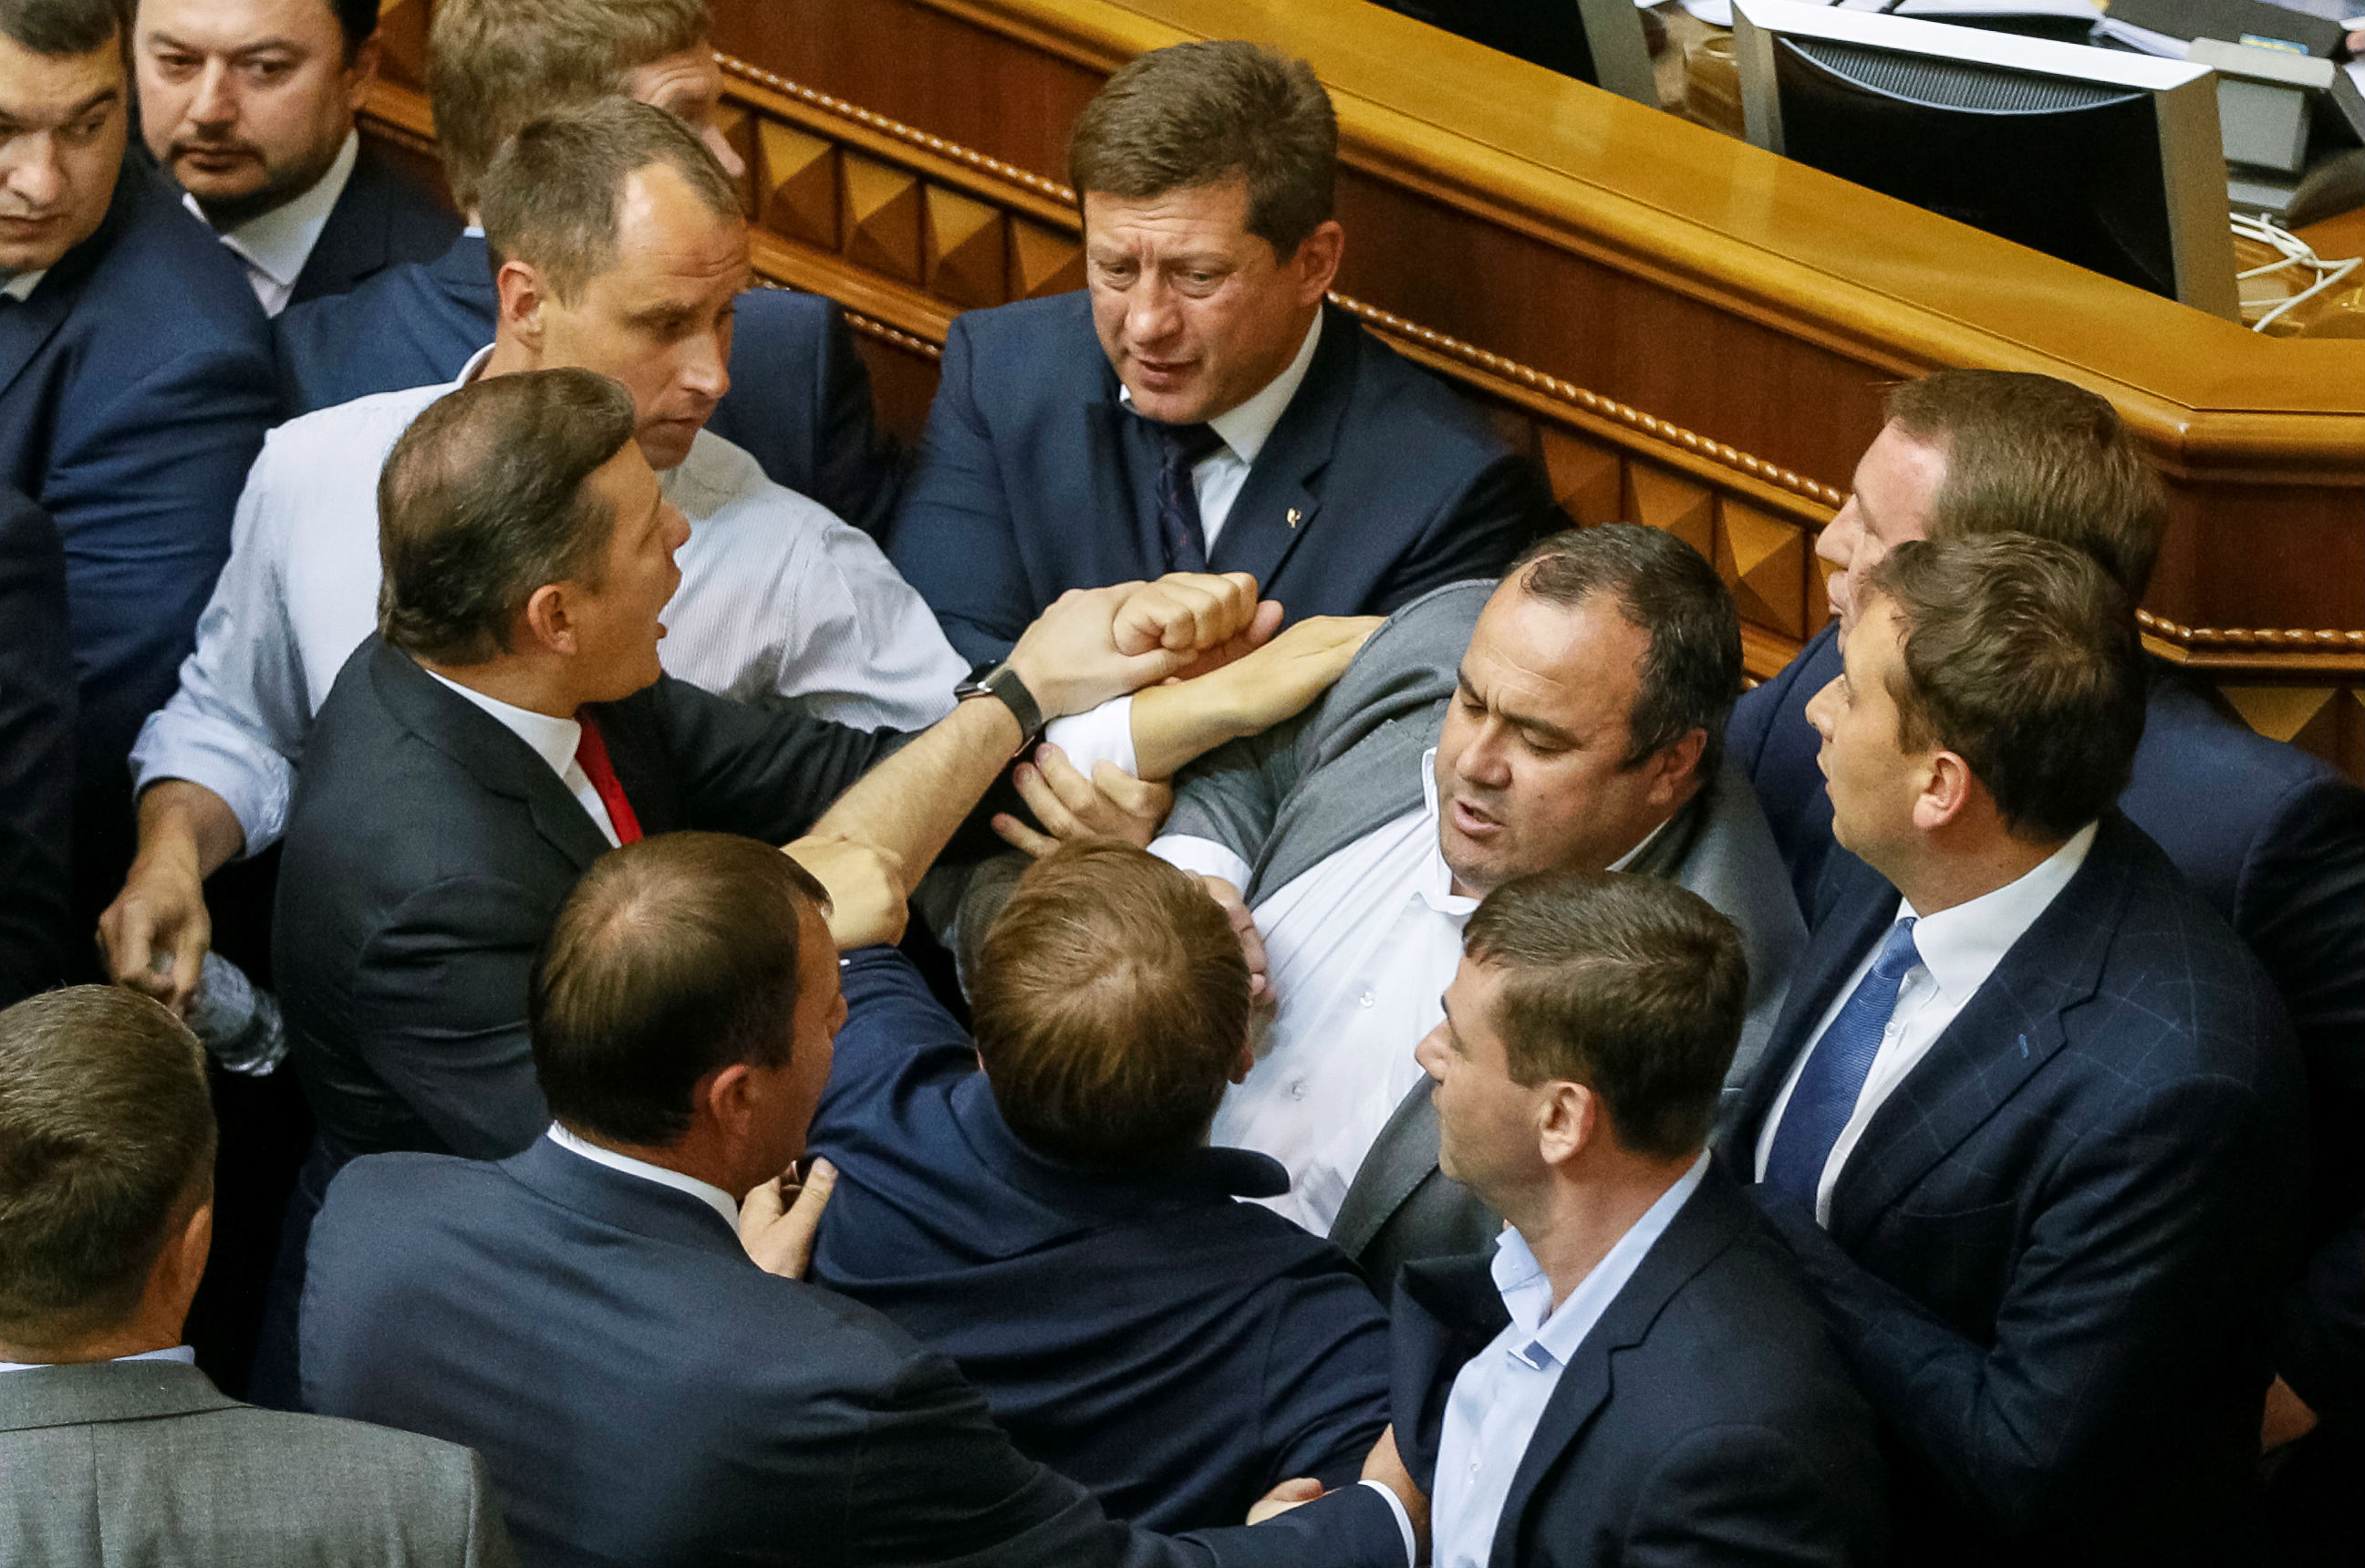 Ukraine's Parliament Is Getting a Facelift, but Will It Make a Difference?